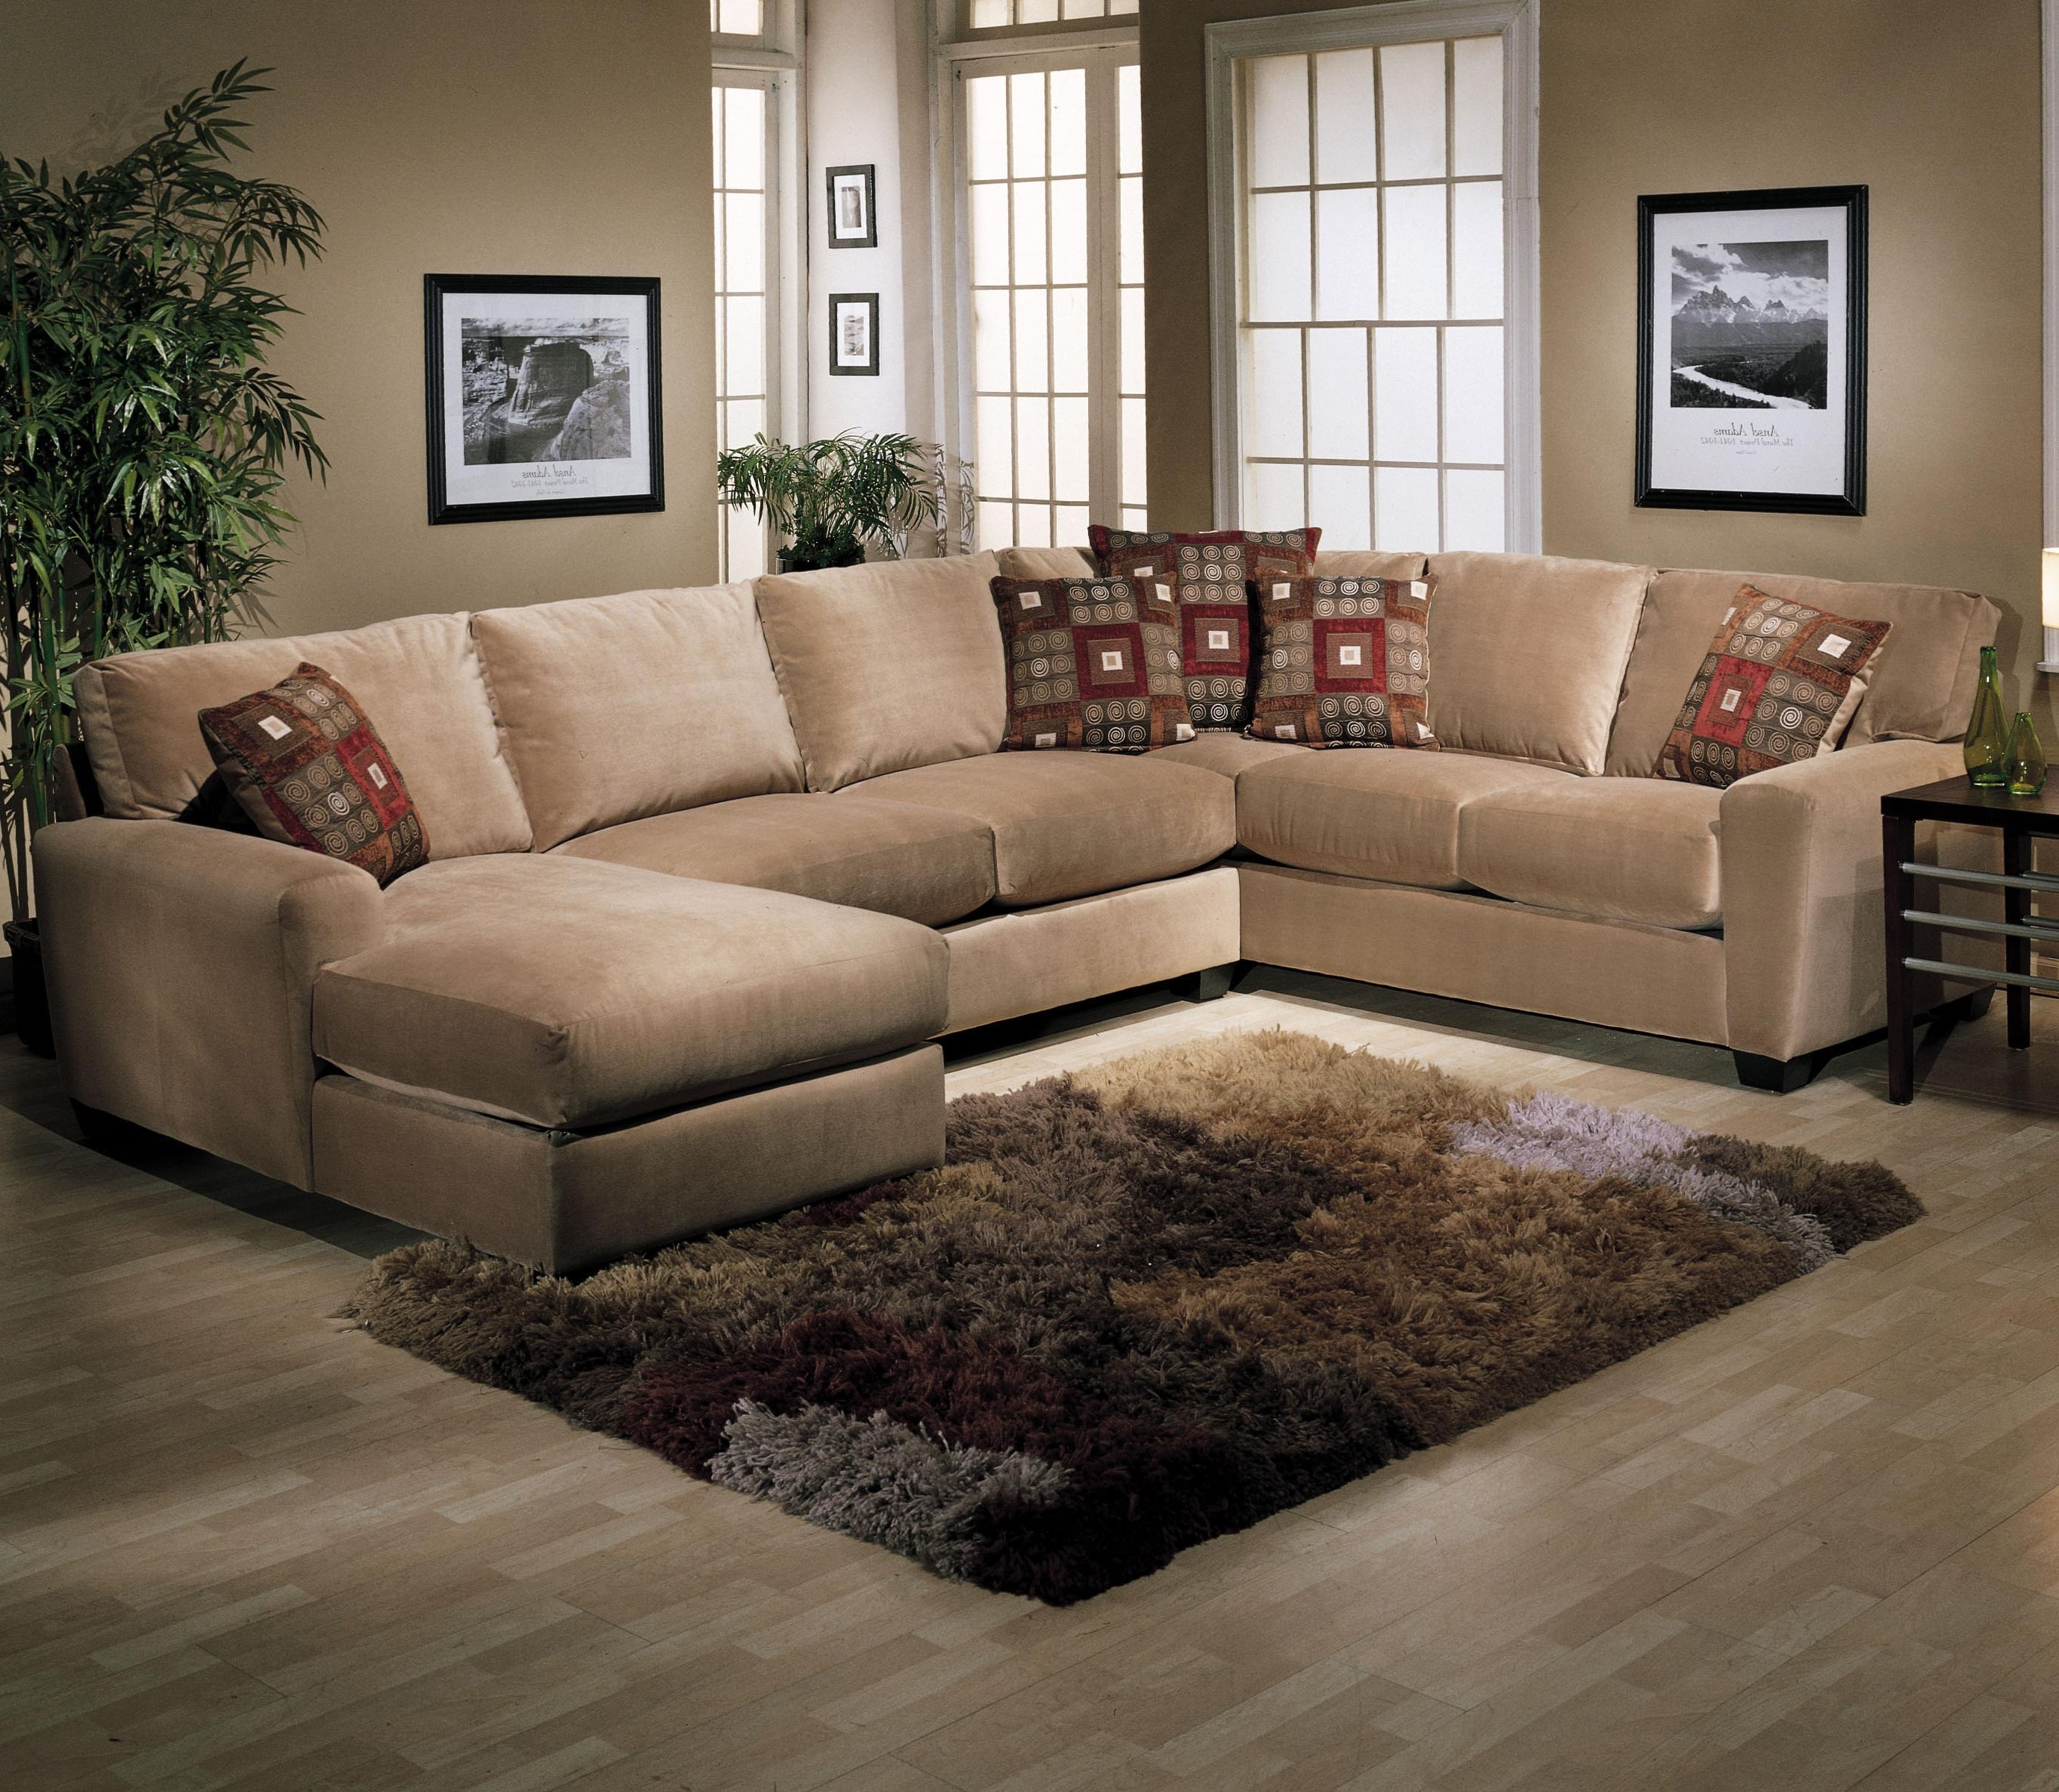 Well Known L Shaped Sofa With Chaise Lounge – Home And Textiles In L Shaped Sectionals With Chaise (View 14 of 15)